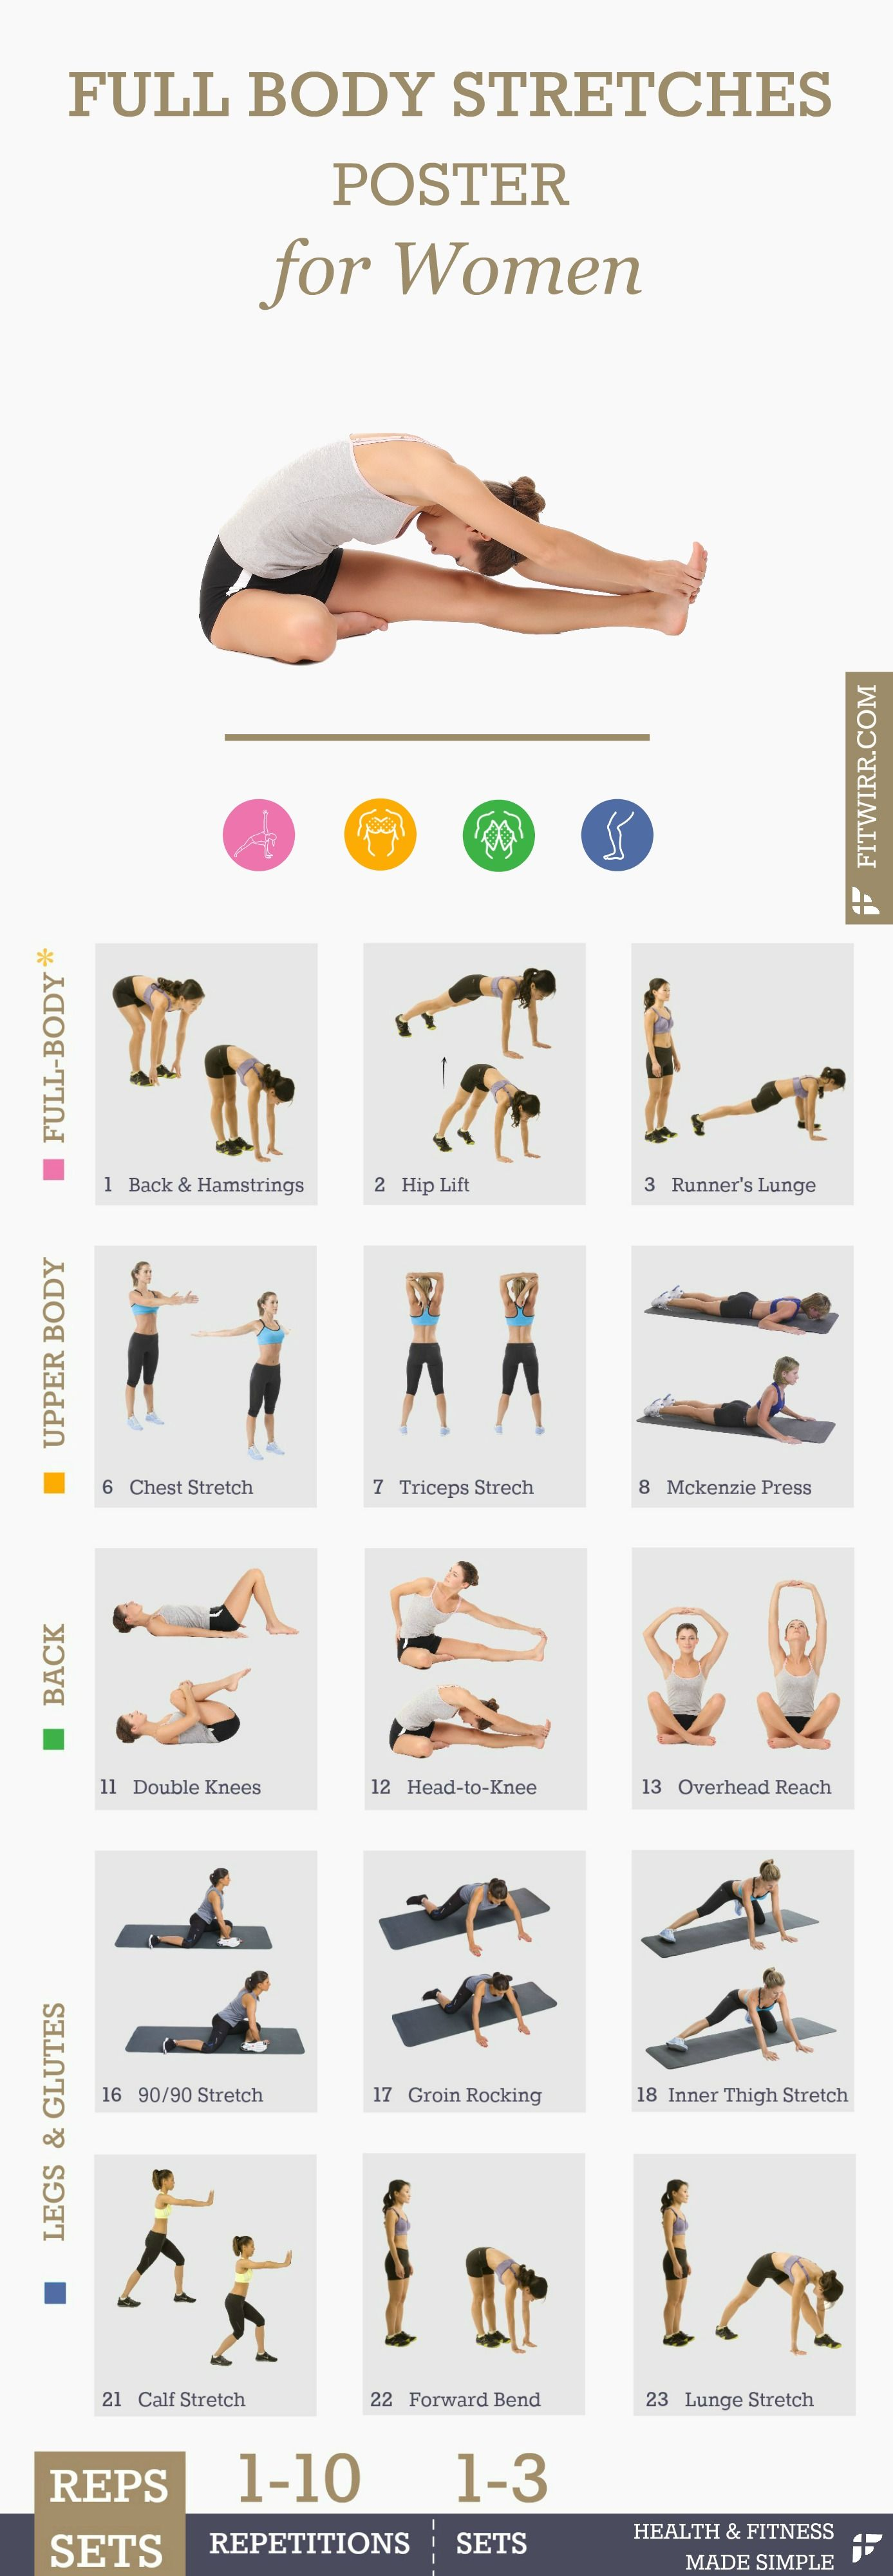 Full body stretches poster for women stretches